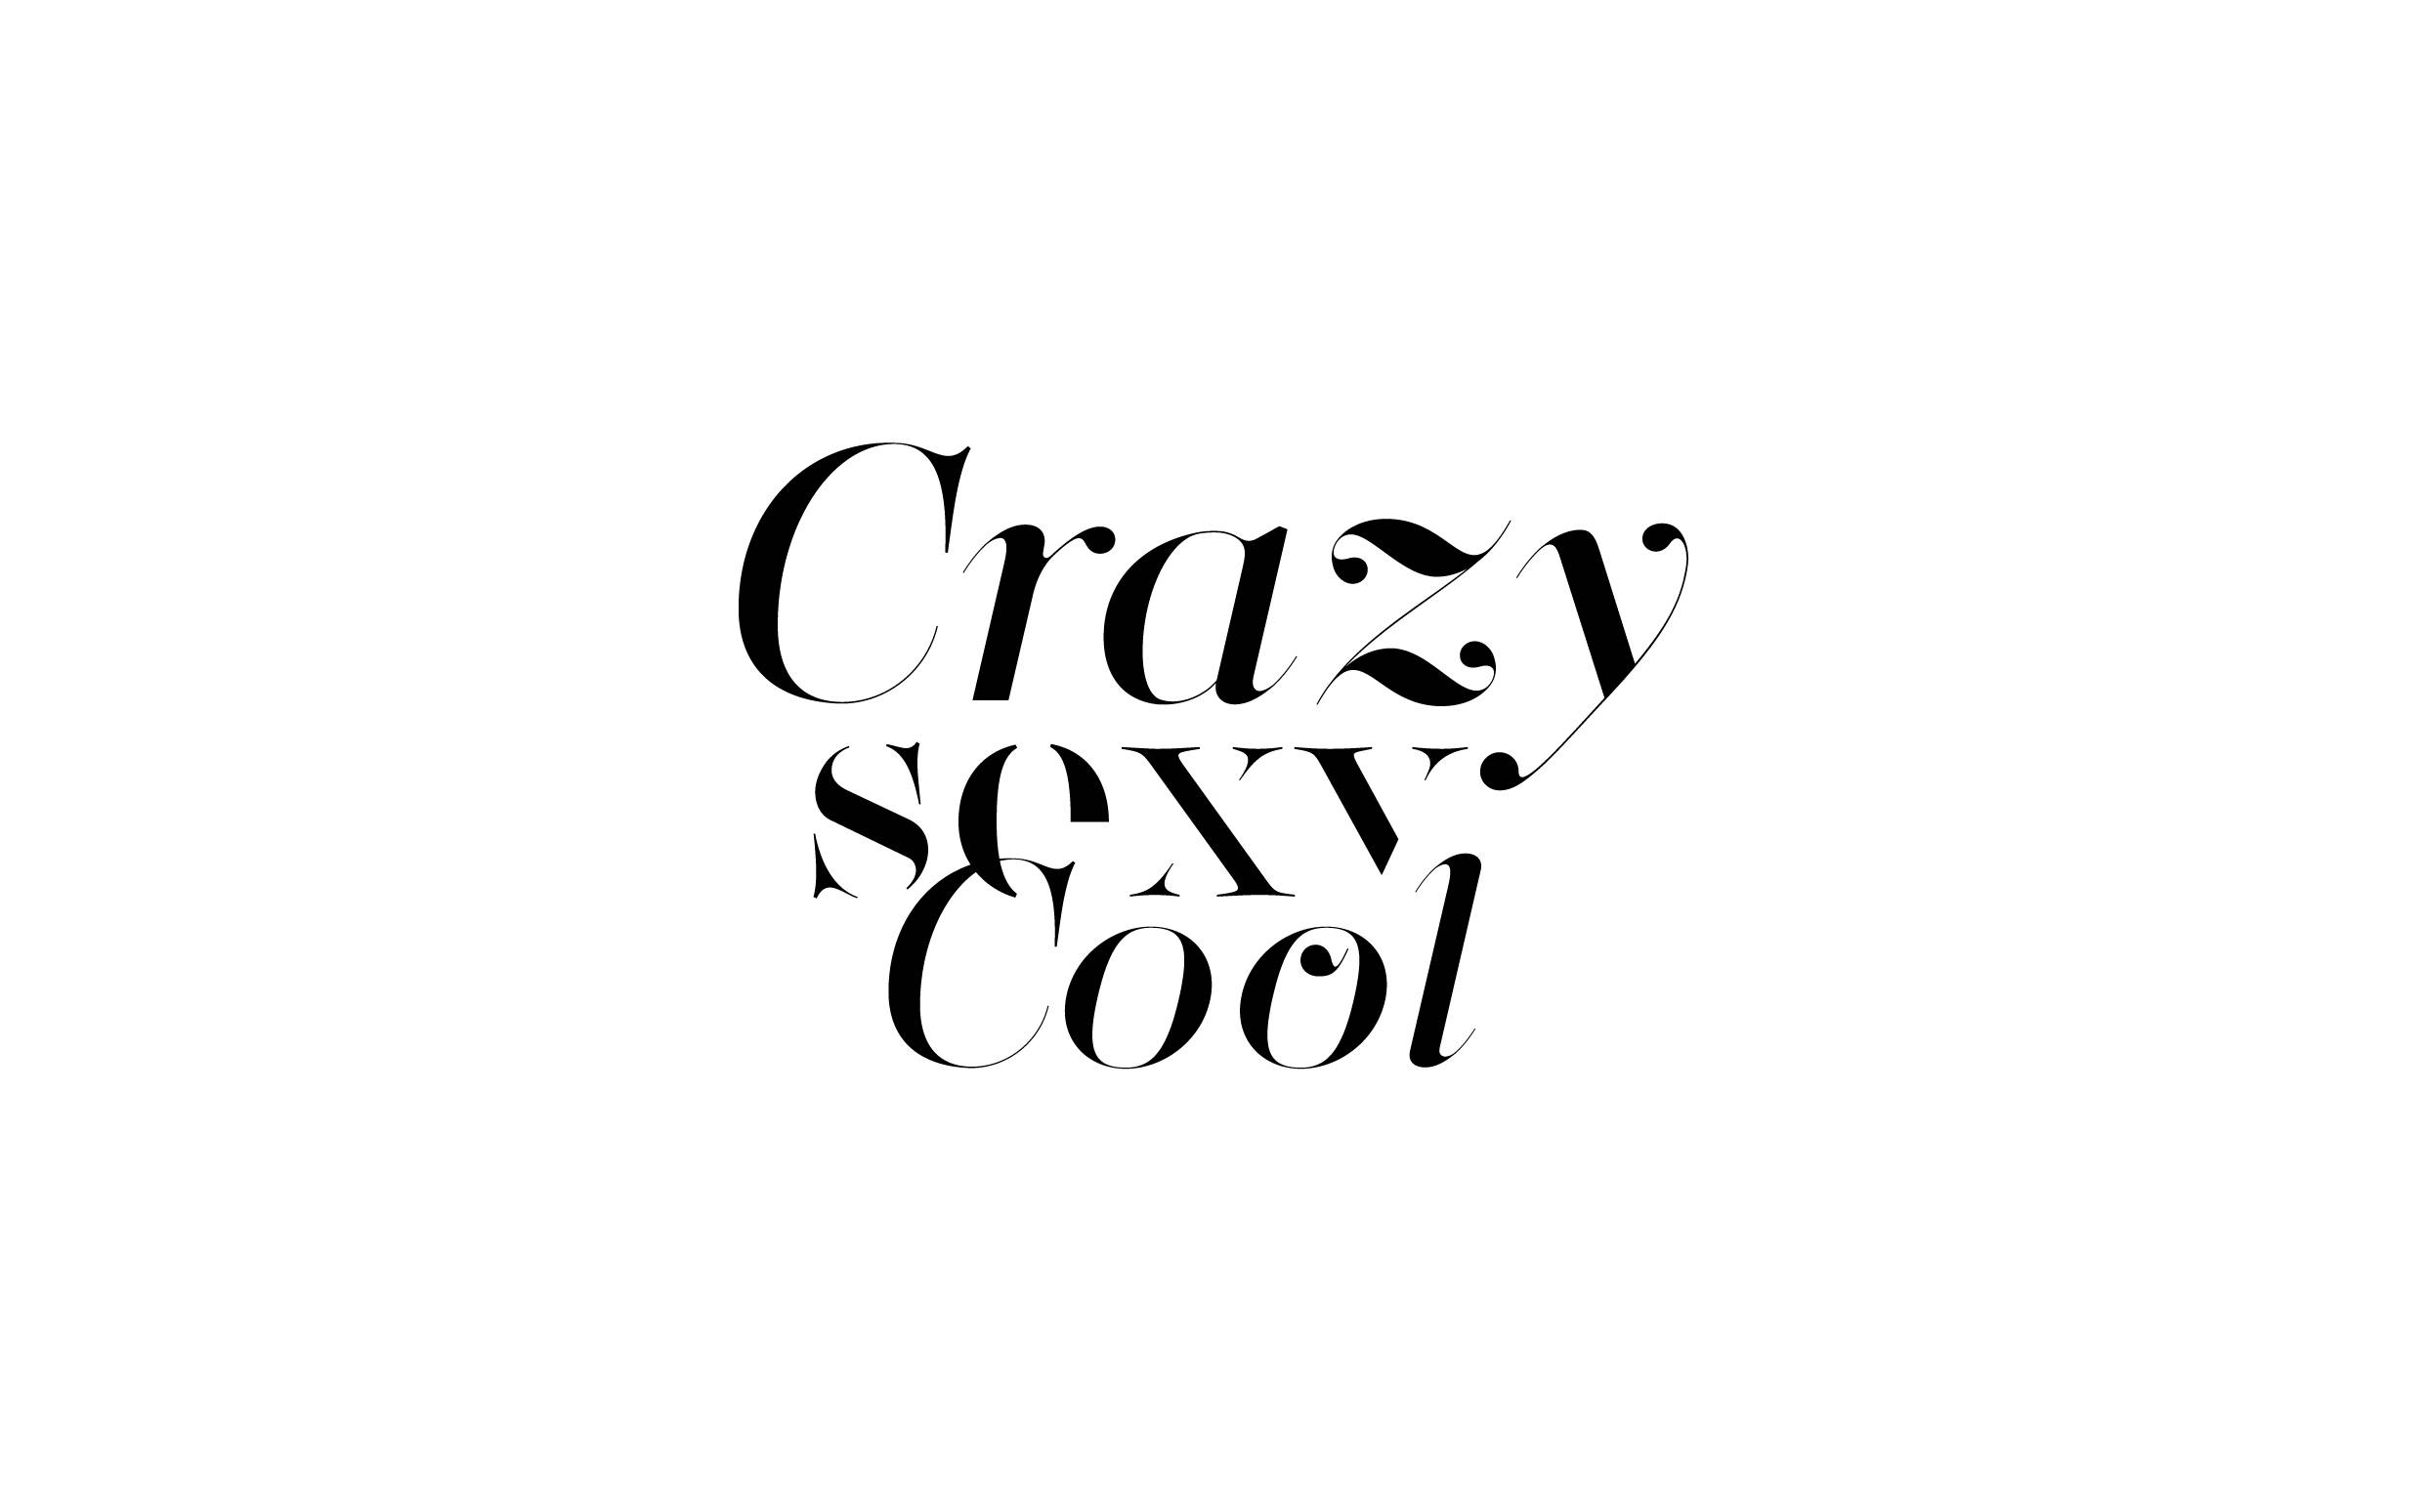 Crazy sexy cool - Custom sexy type collection by Moshik Nadav Typography